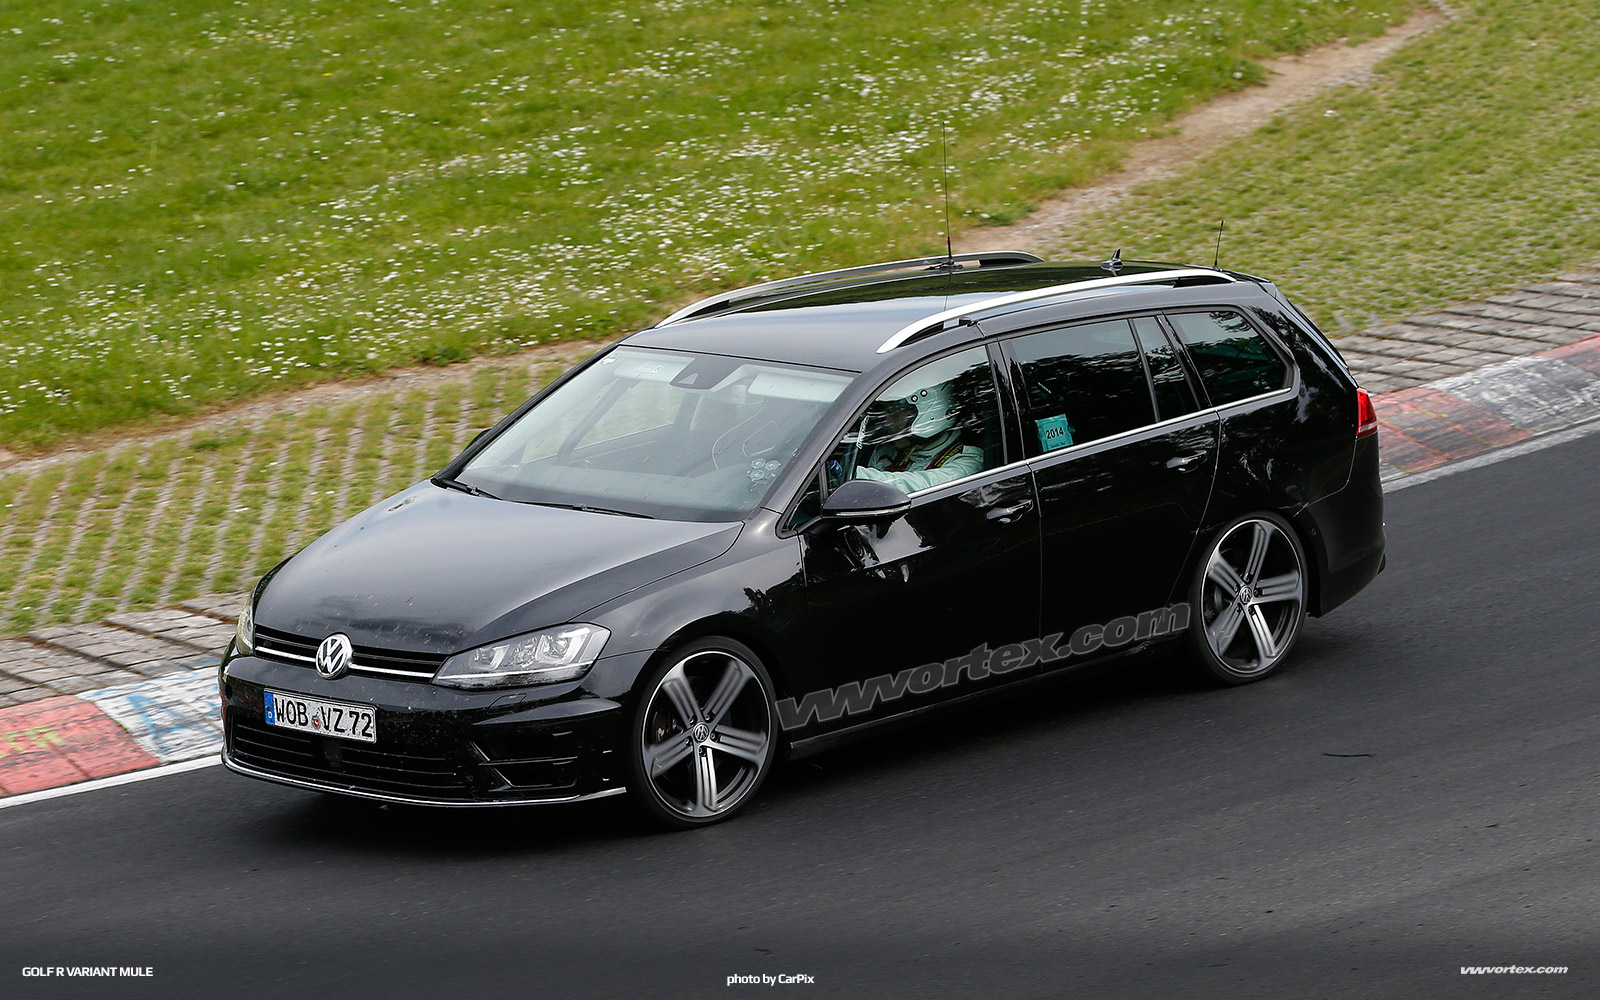 vw-golf-r-variant-mule-380